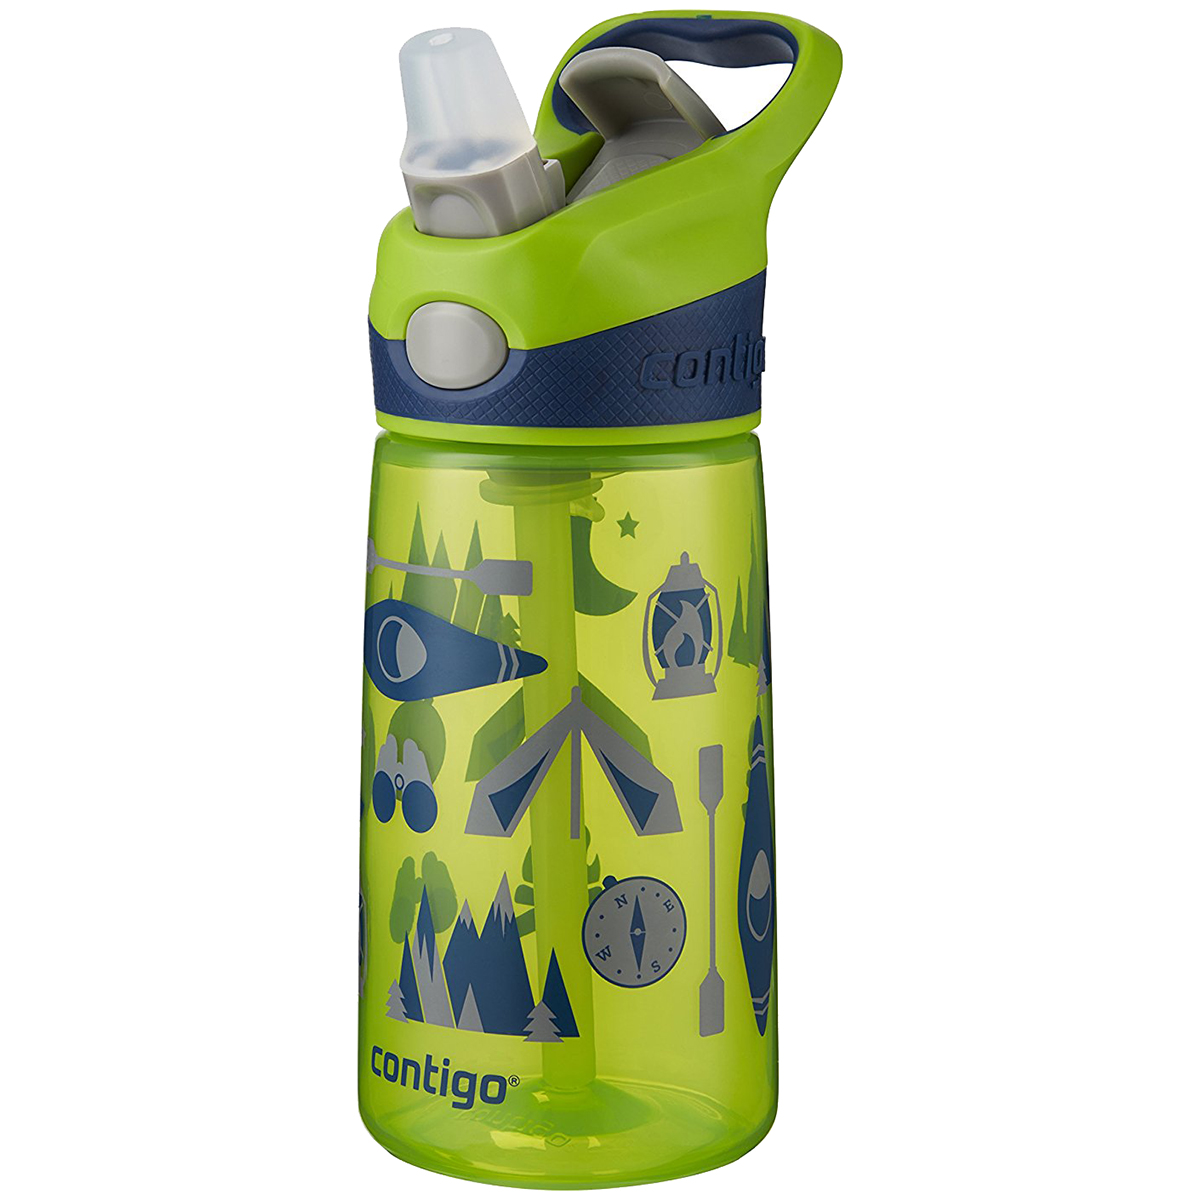 Contigo-14-oz-Kid-039-s-Striker-Autospout-Water-Bottle Indexbild 15